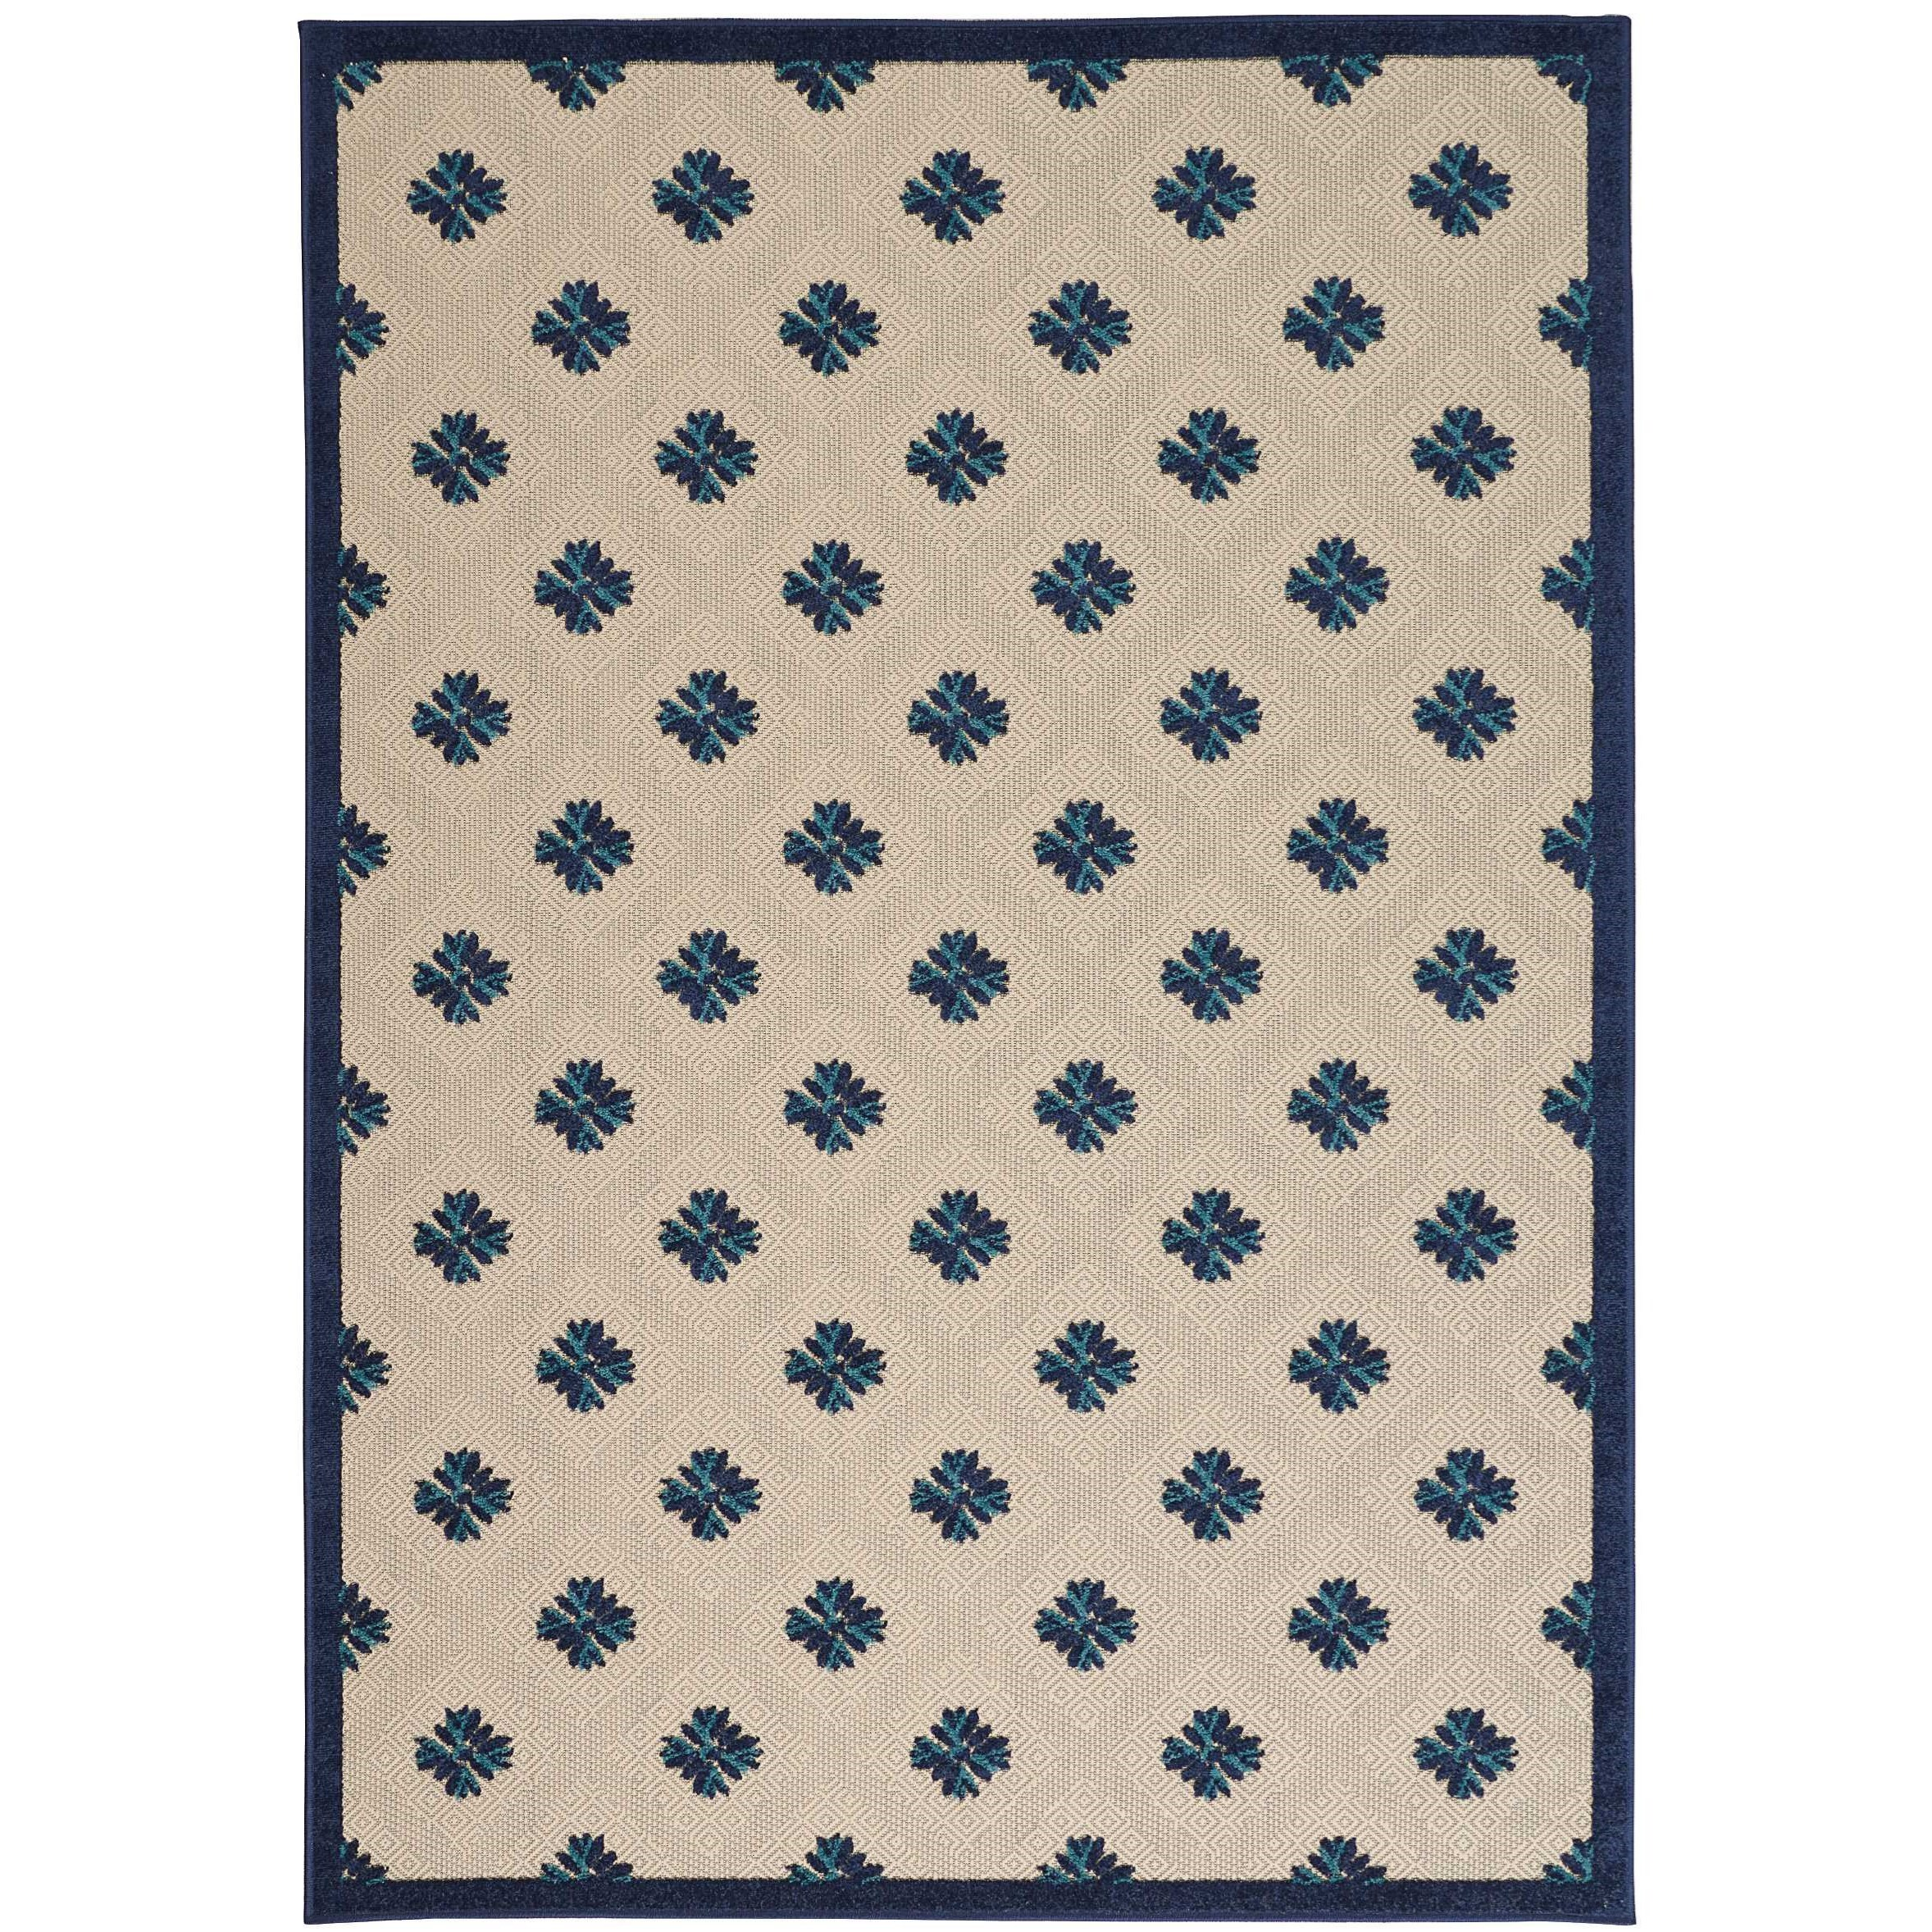 """Aloha 9'6"""" x 13' Navy Rectangle Rug by Nourison at Home Collections Furniture"""